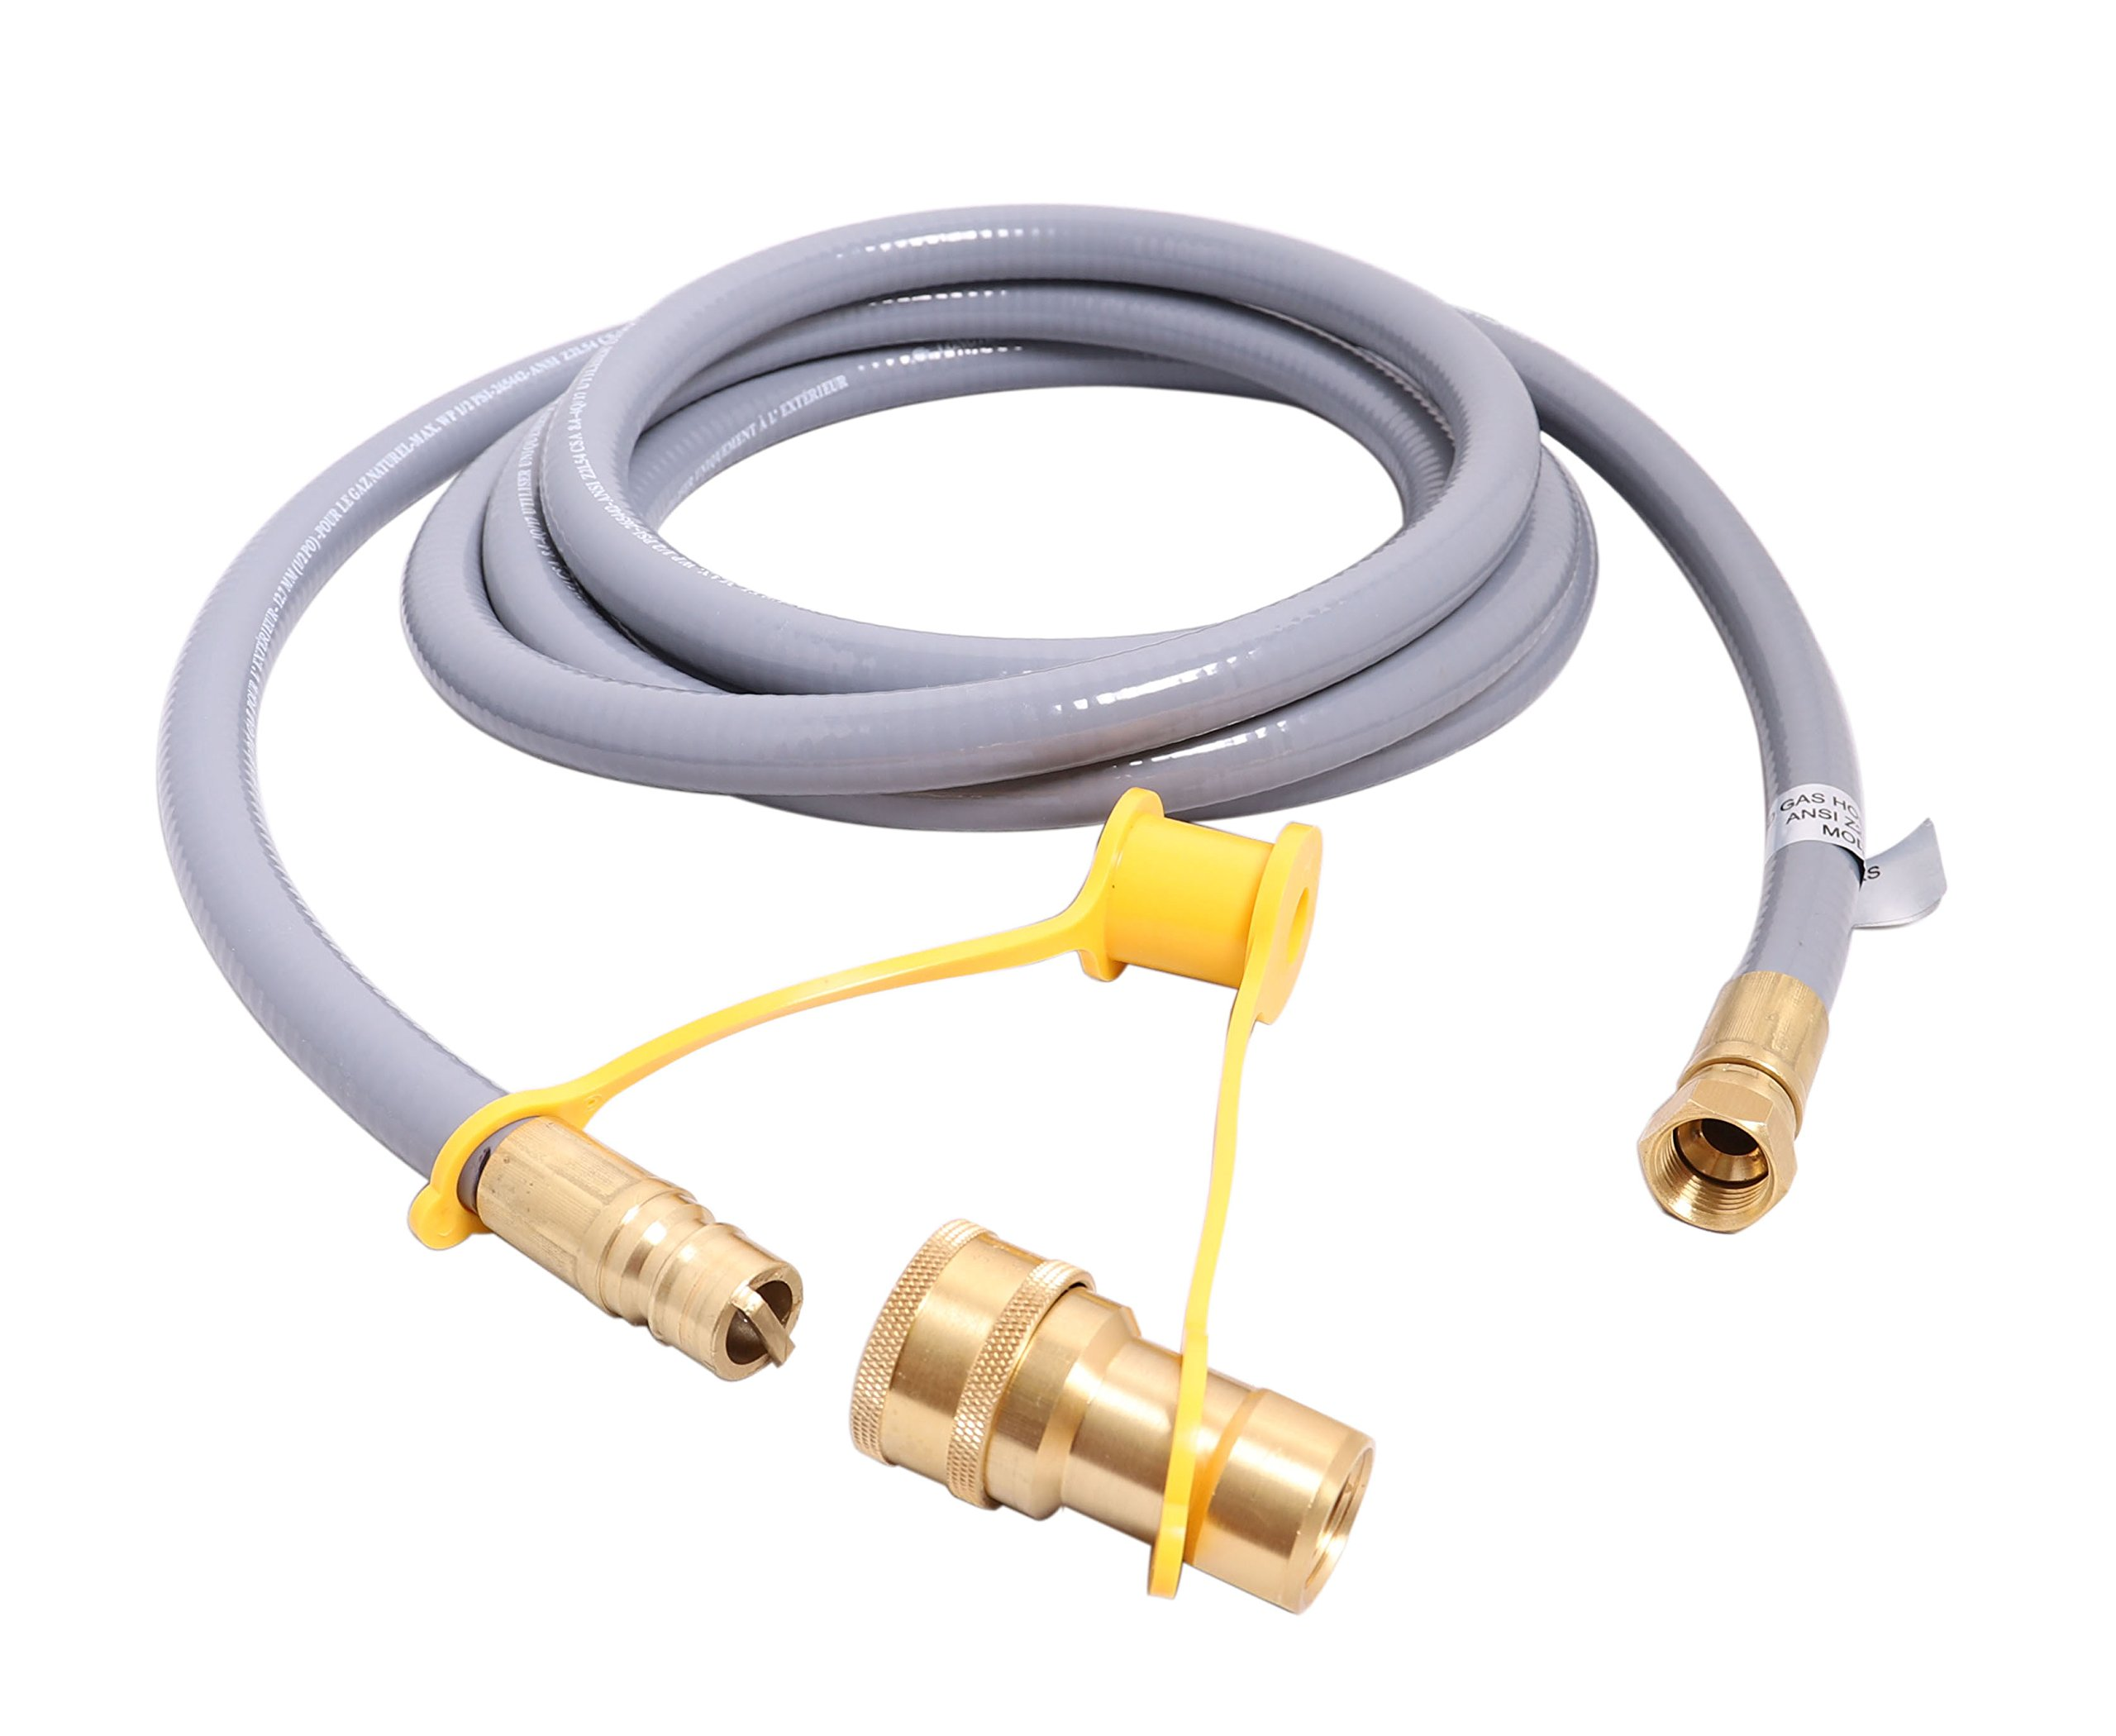 KIBOW 12Ft 1/2 Inch ID Low Pressure Natural Gas and Propane Gas Hose Assembly-CSA Certified by KIBOW